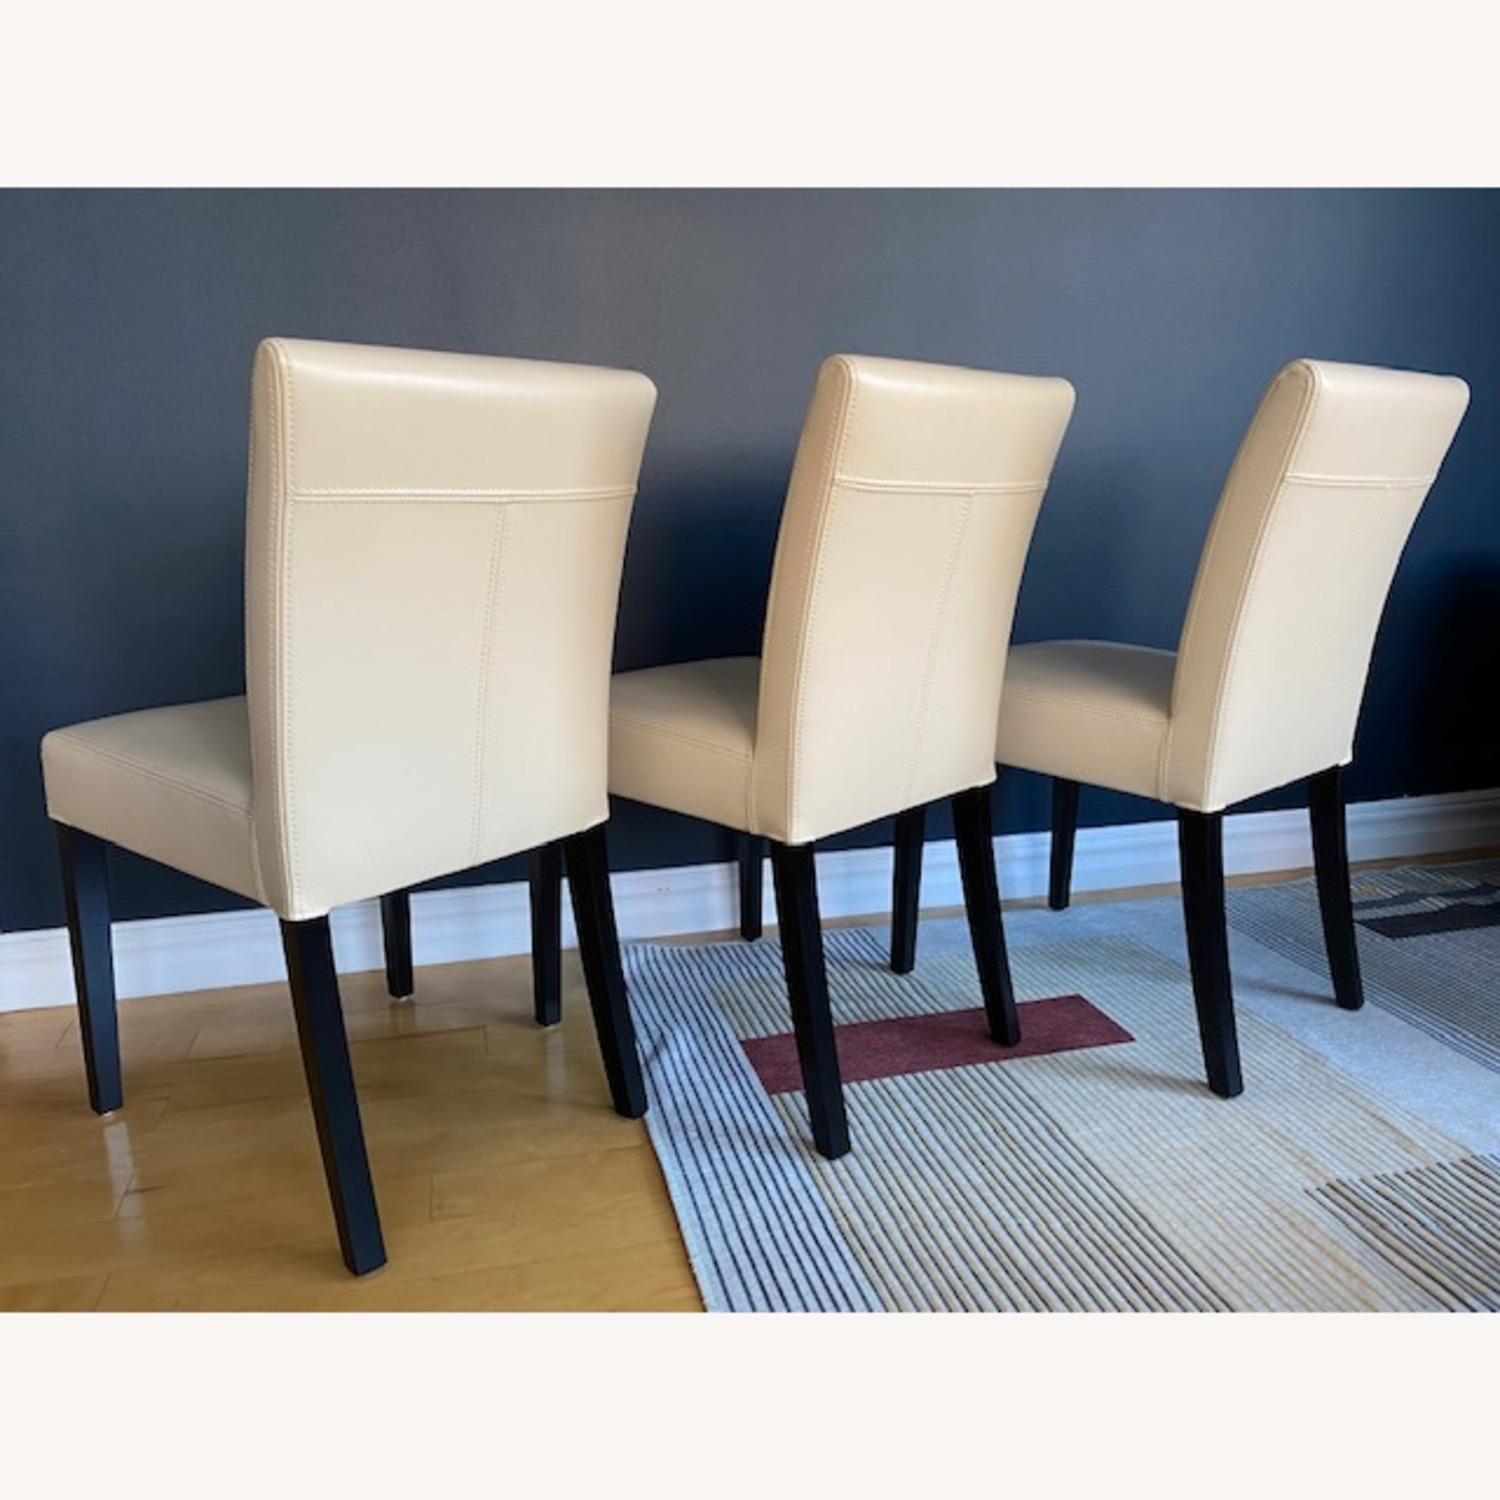 Crate & Barrel Lowe Ivory Leather Dining Chairs - image-1